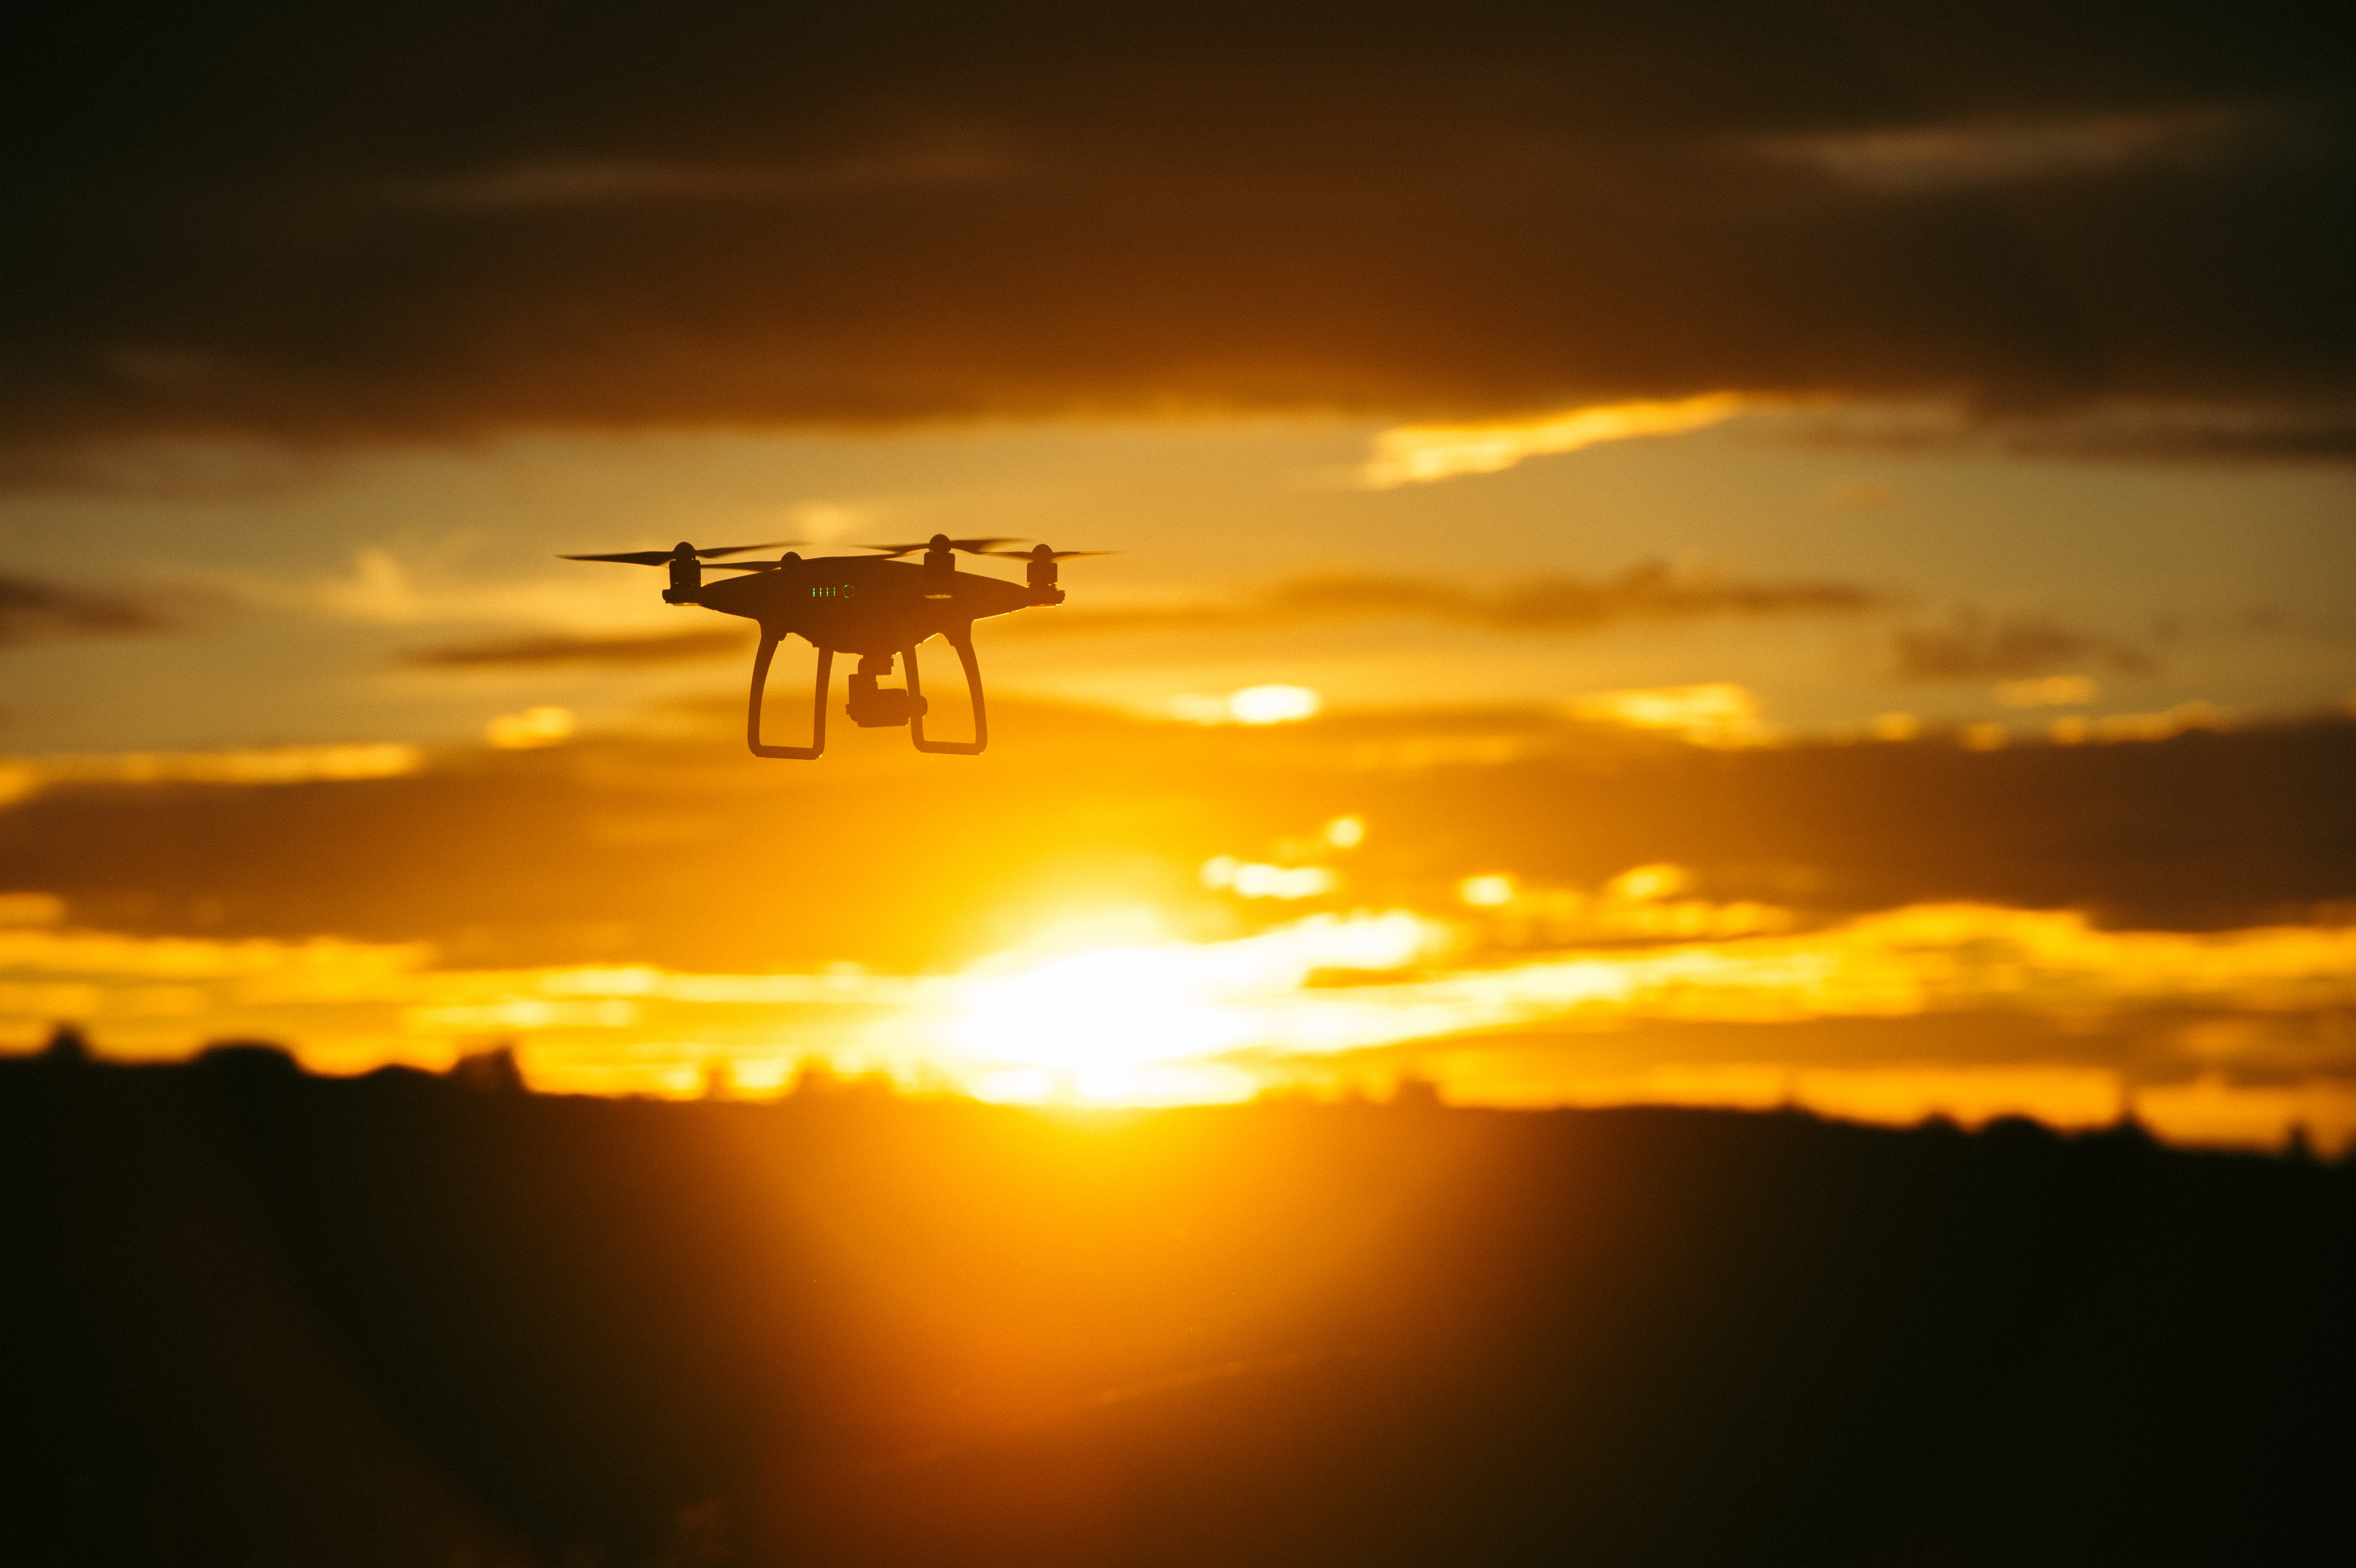 View of a flying drone in focus with a sunrise-or-sunset background making the floor dark and the cloudy sky orange